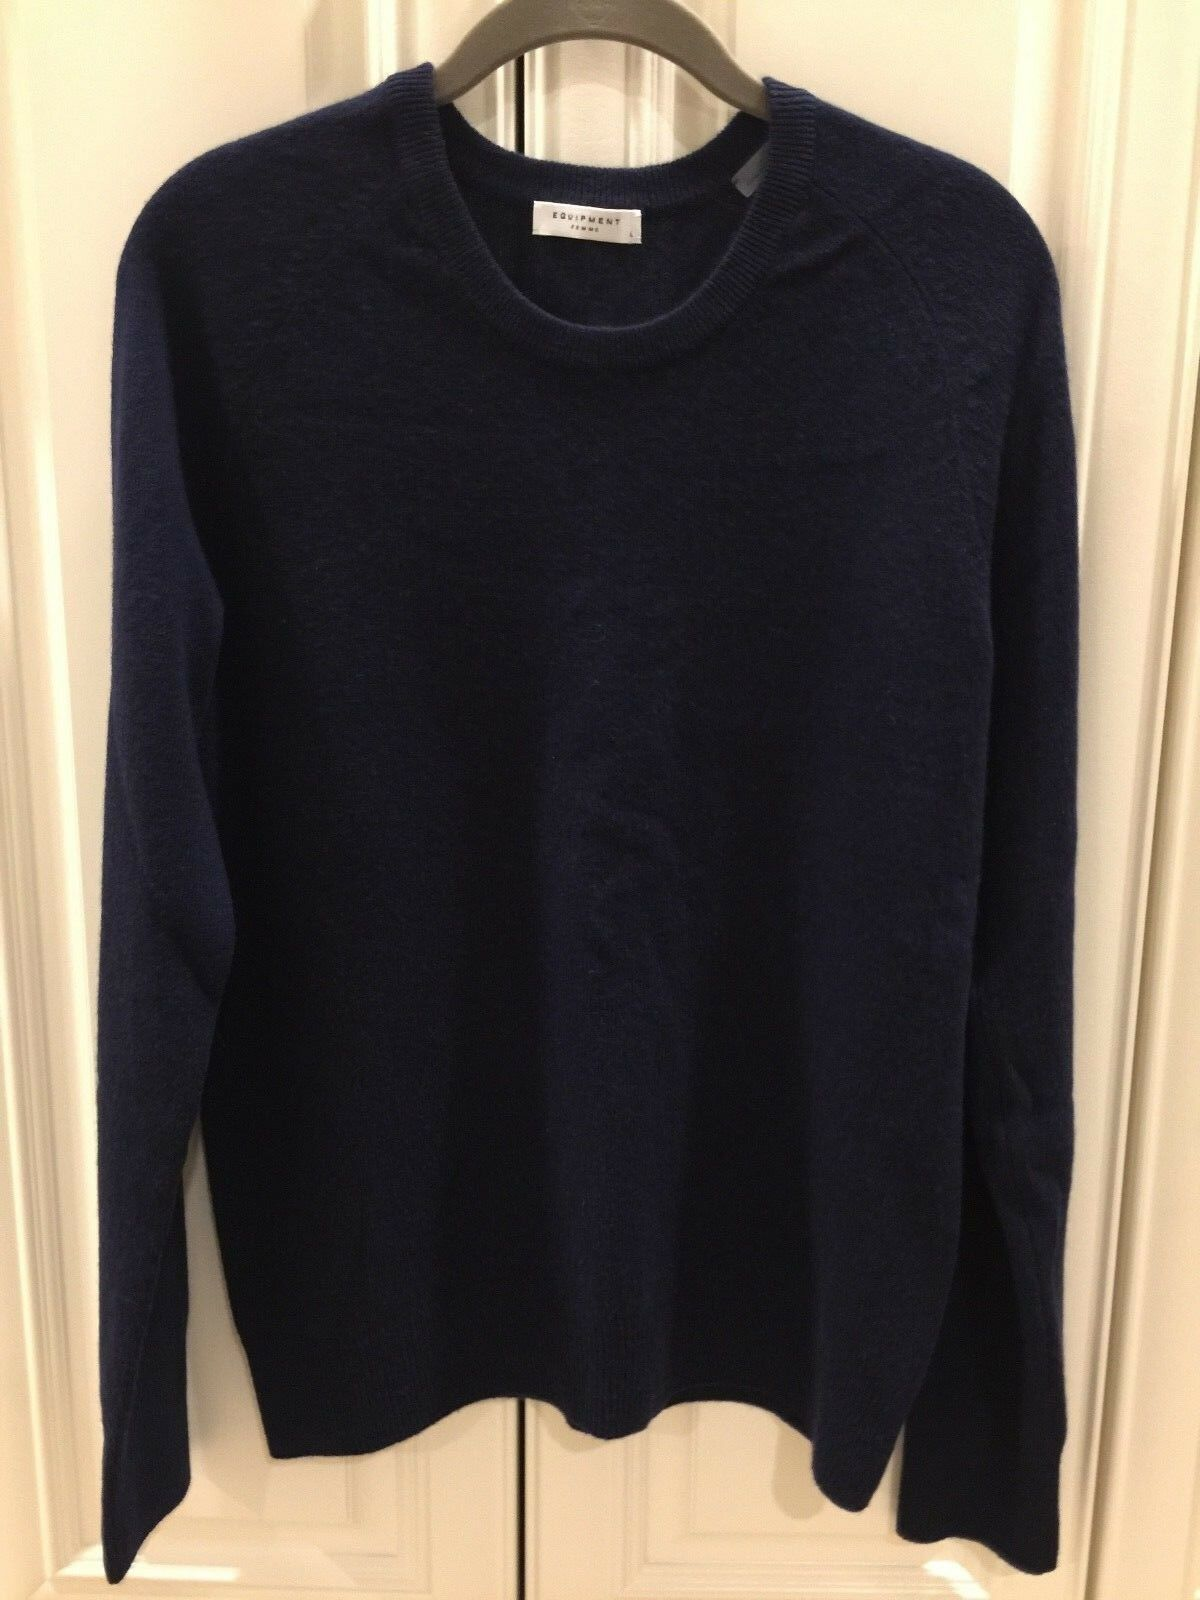 Equipment Sloan cashmere sweater - Bloomingdales - navy - size size size L - NWOT  268 ret 594515